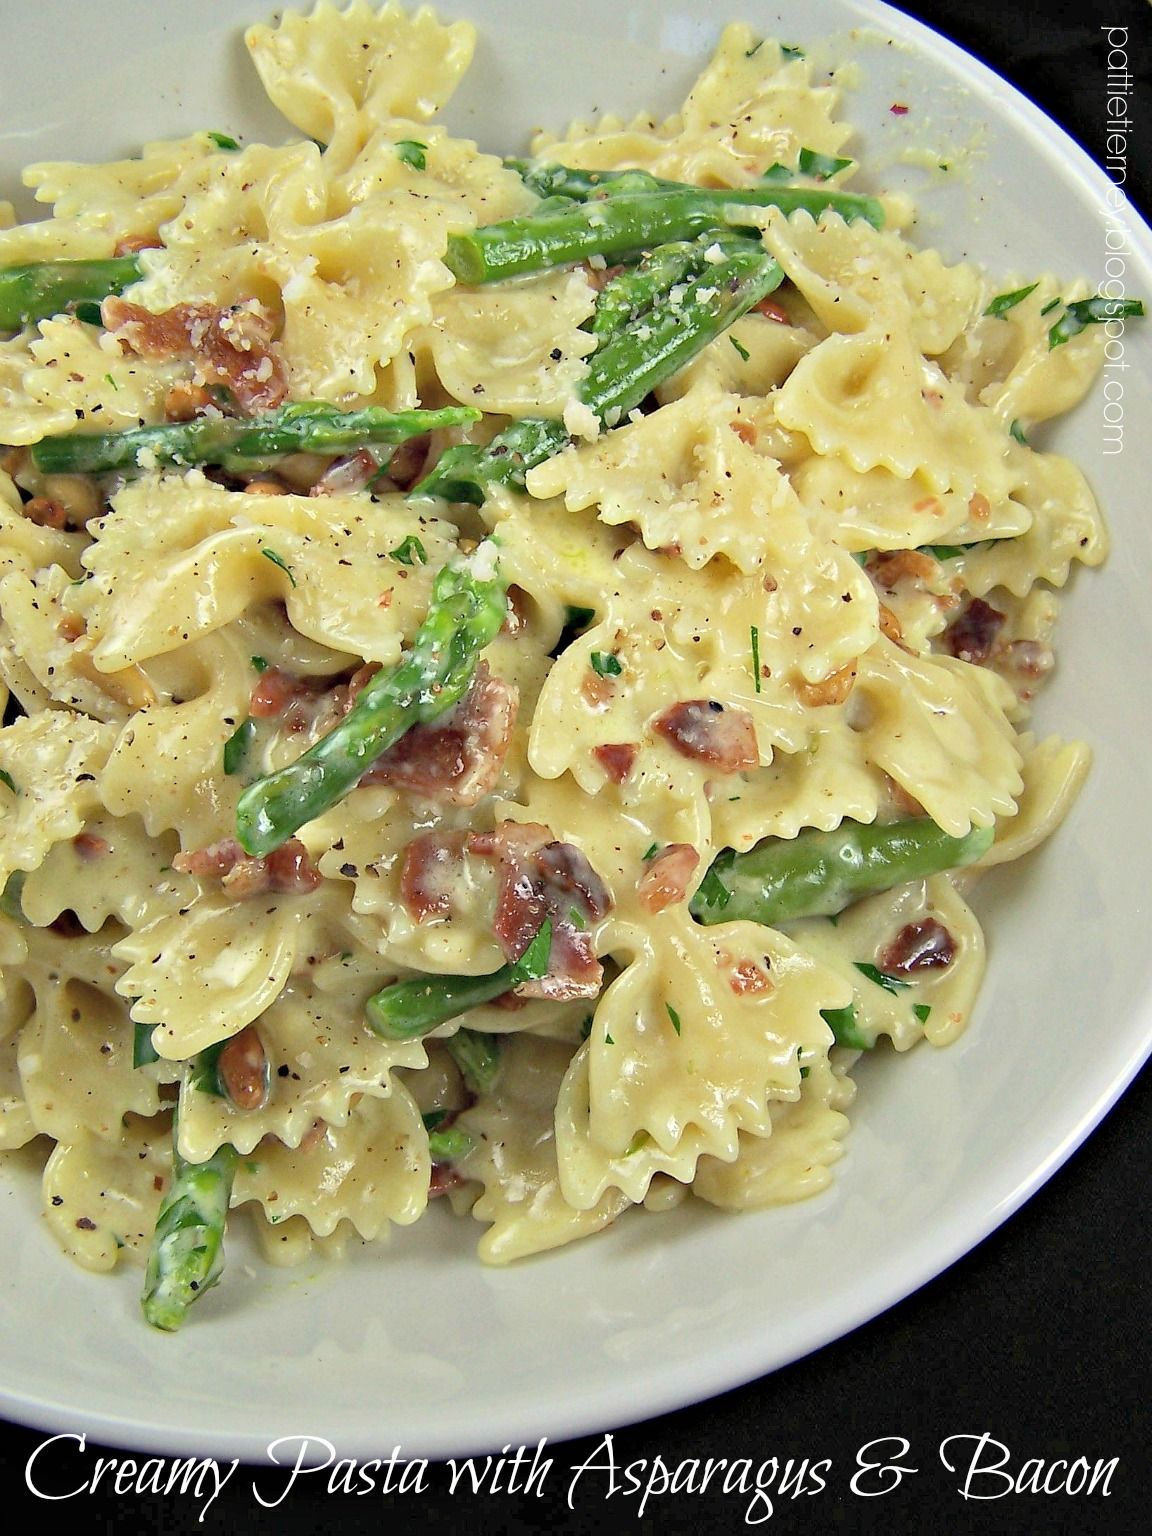 Creamy Pasta with Asparagus & Bacon